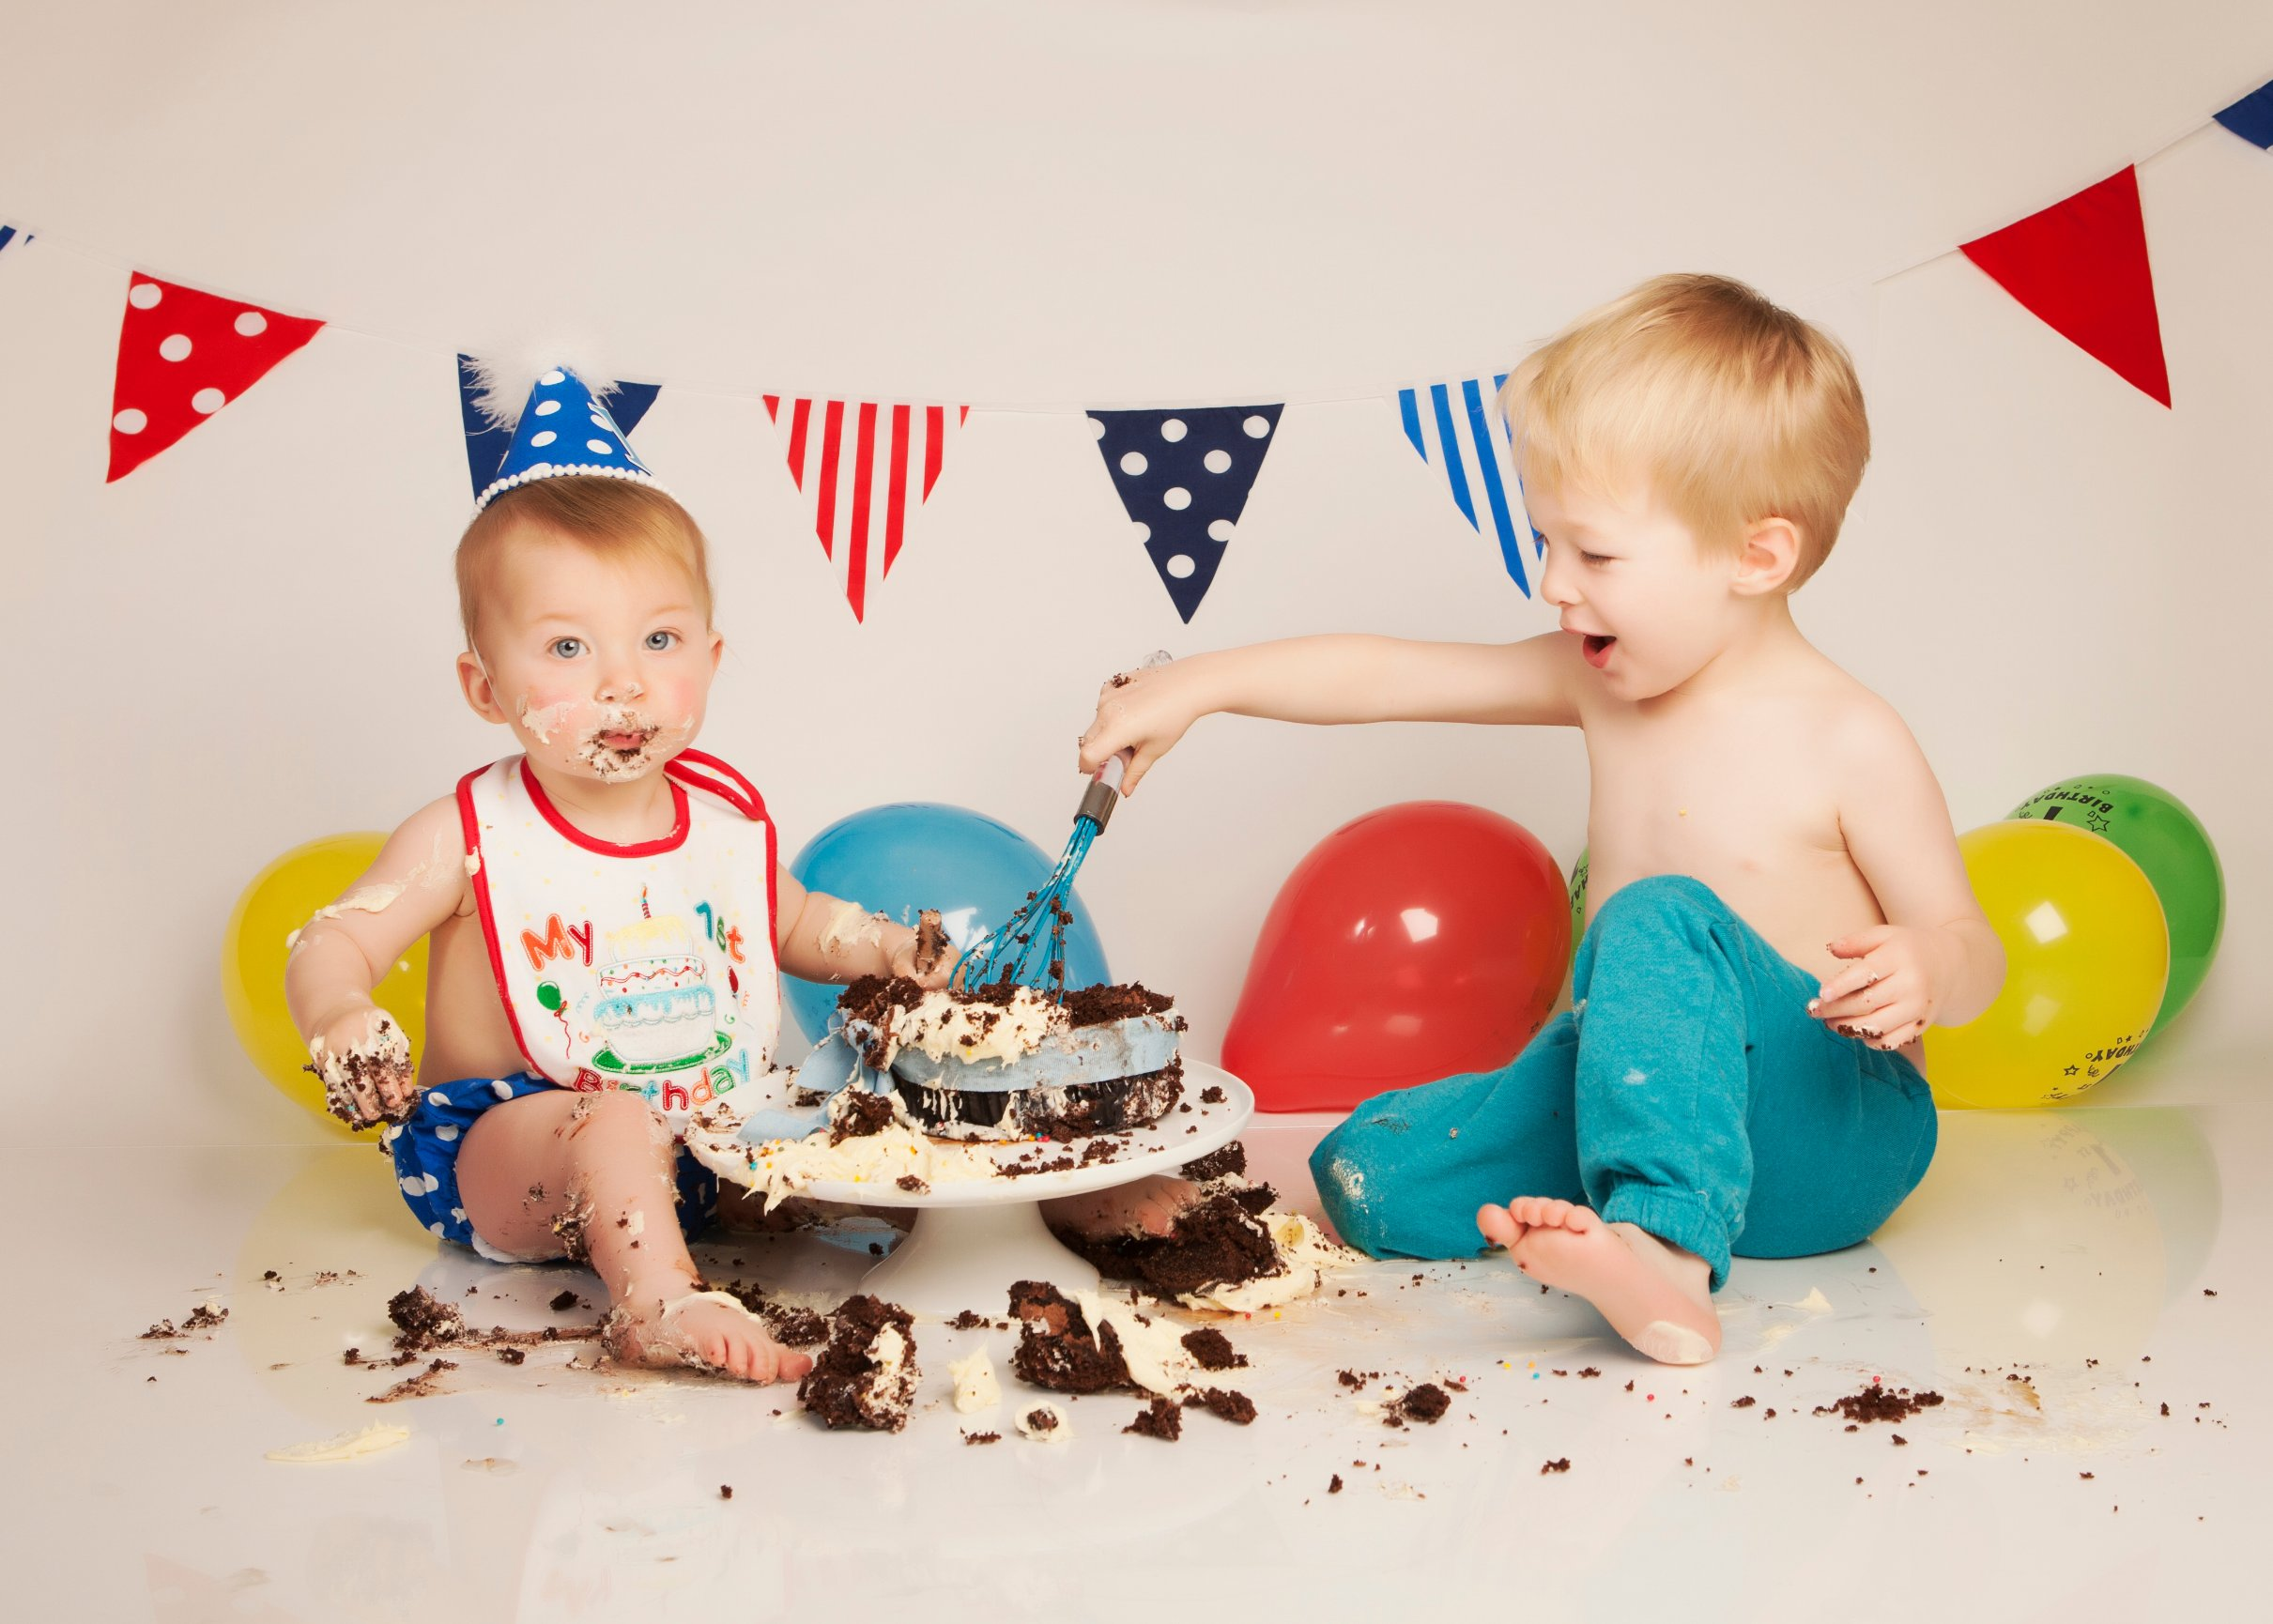 Cake Design Horley : Cake Smash with Birthday Boy Jayden from Horley - Tamara s ...